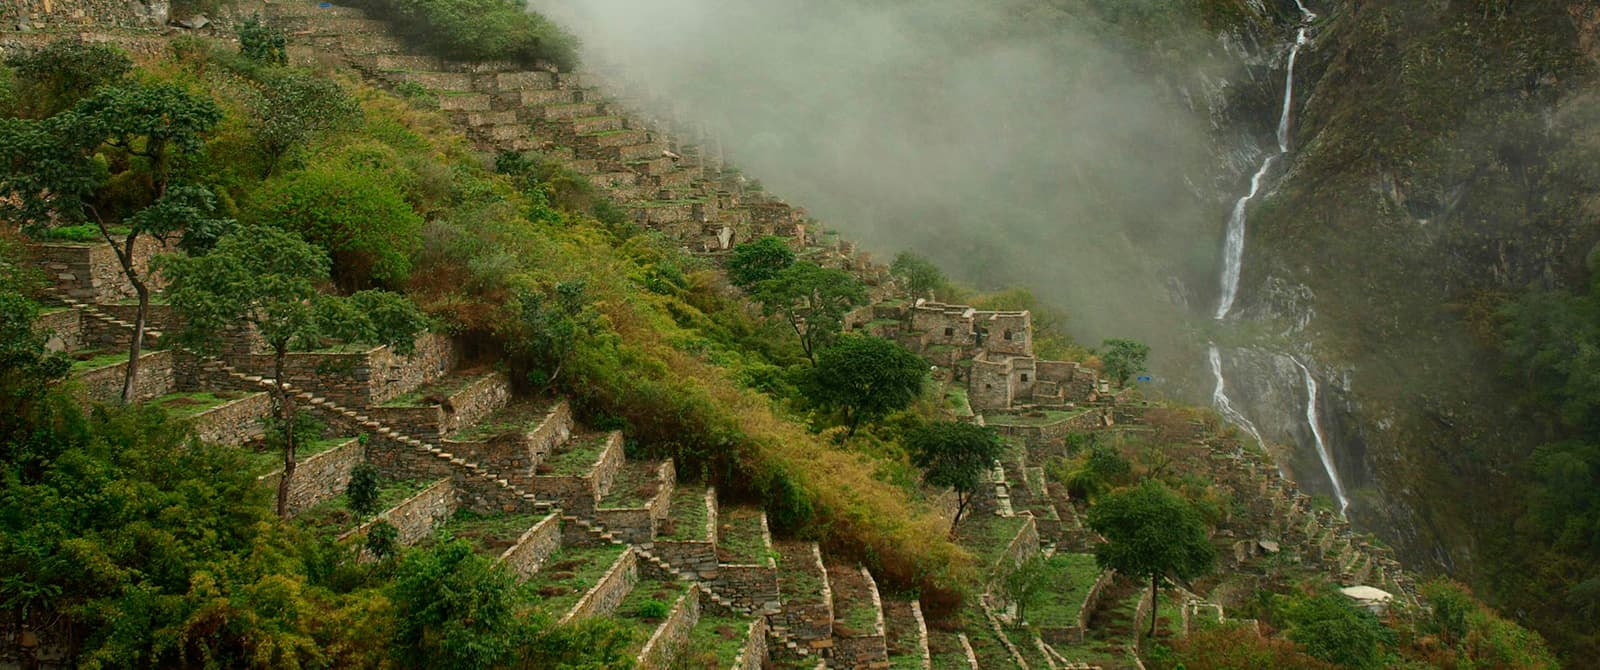 the lost city of the incas choquequirao